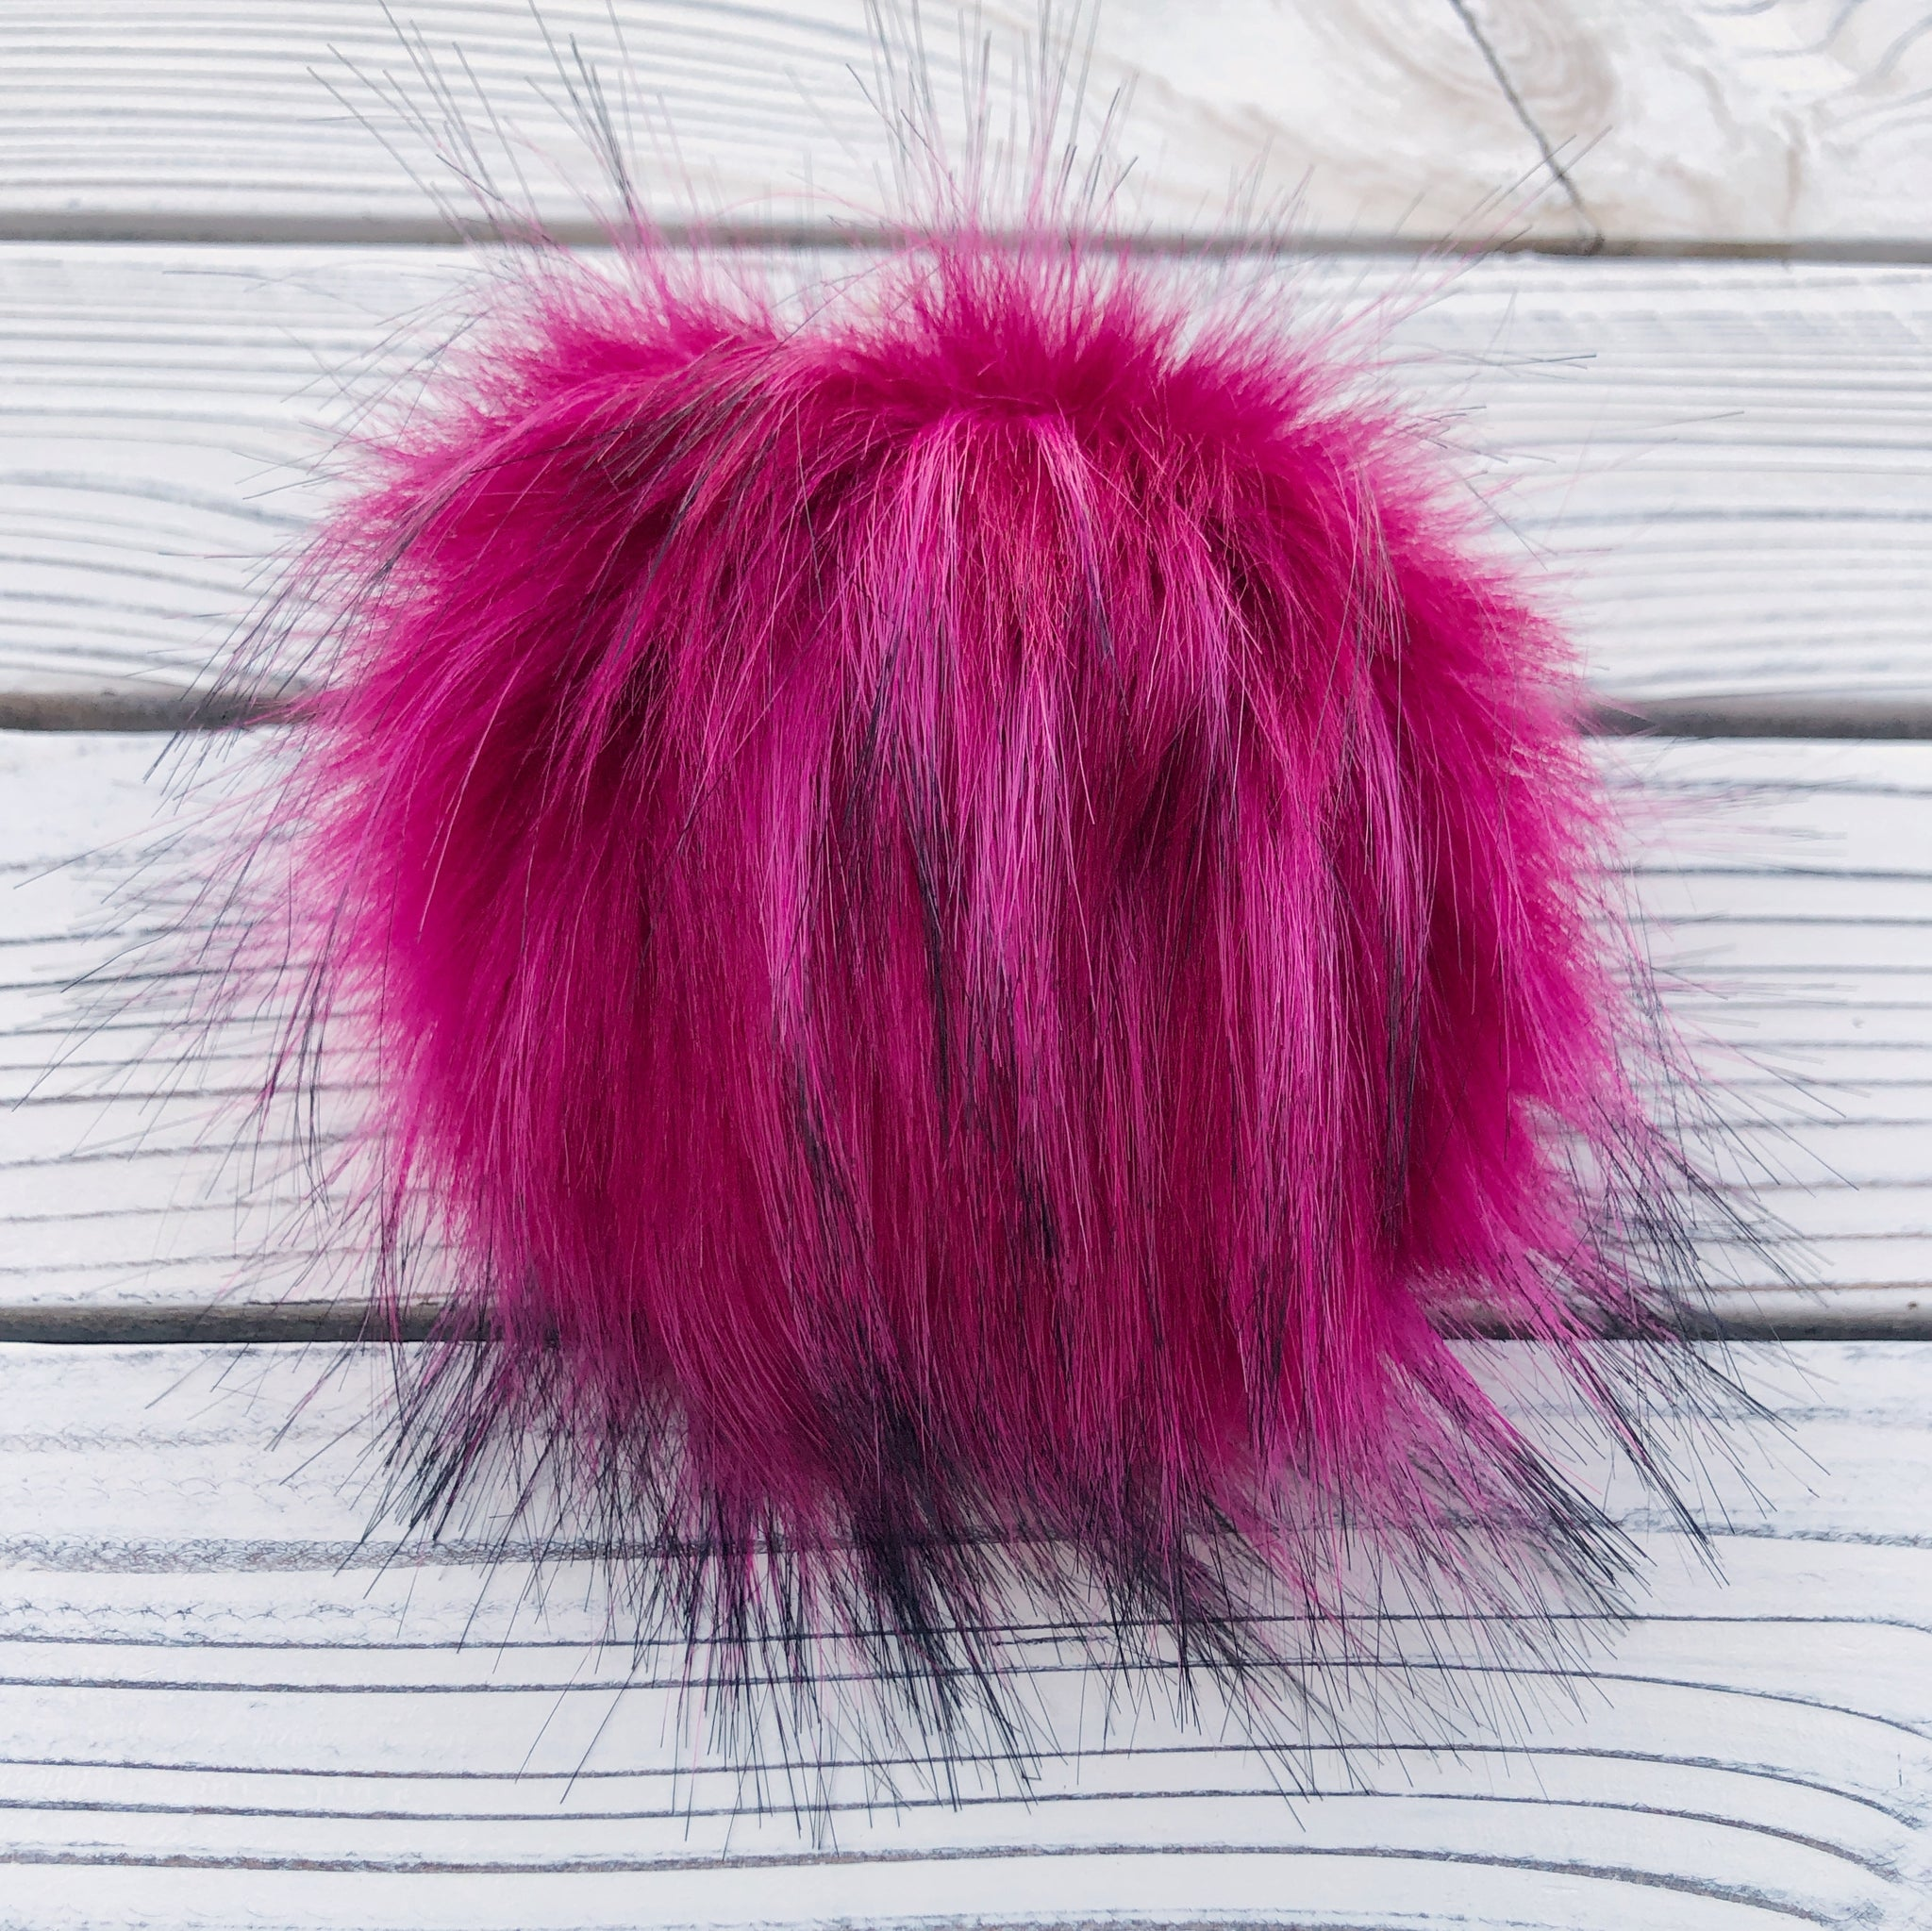 Magenta Pom Pom with snap